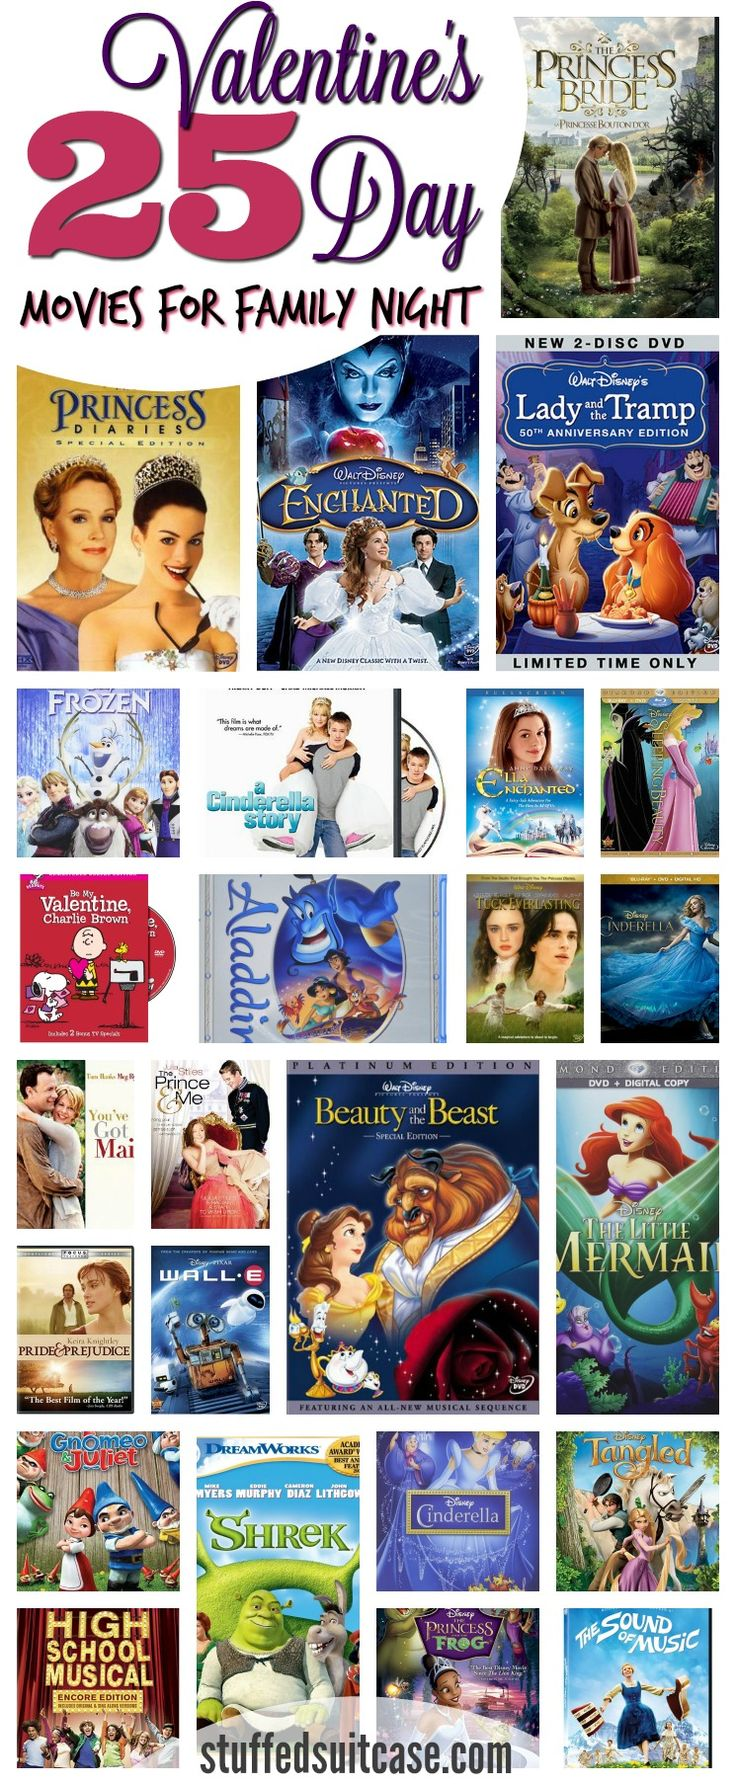 Valentine's Day doesn't just need to be for couples. Here are 25 Valentine's Day movies perfect for your next family movie night, they're great for the whole family!